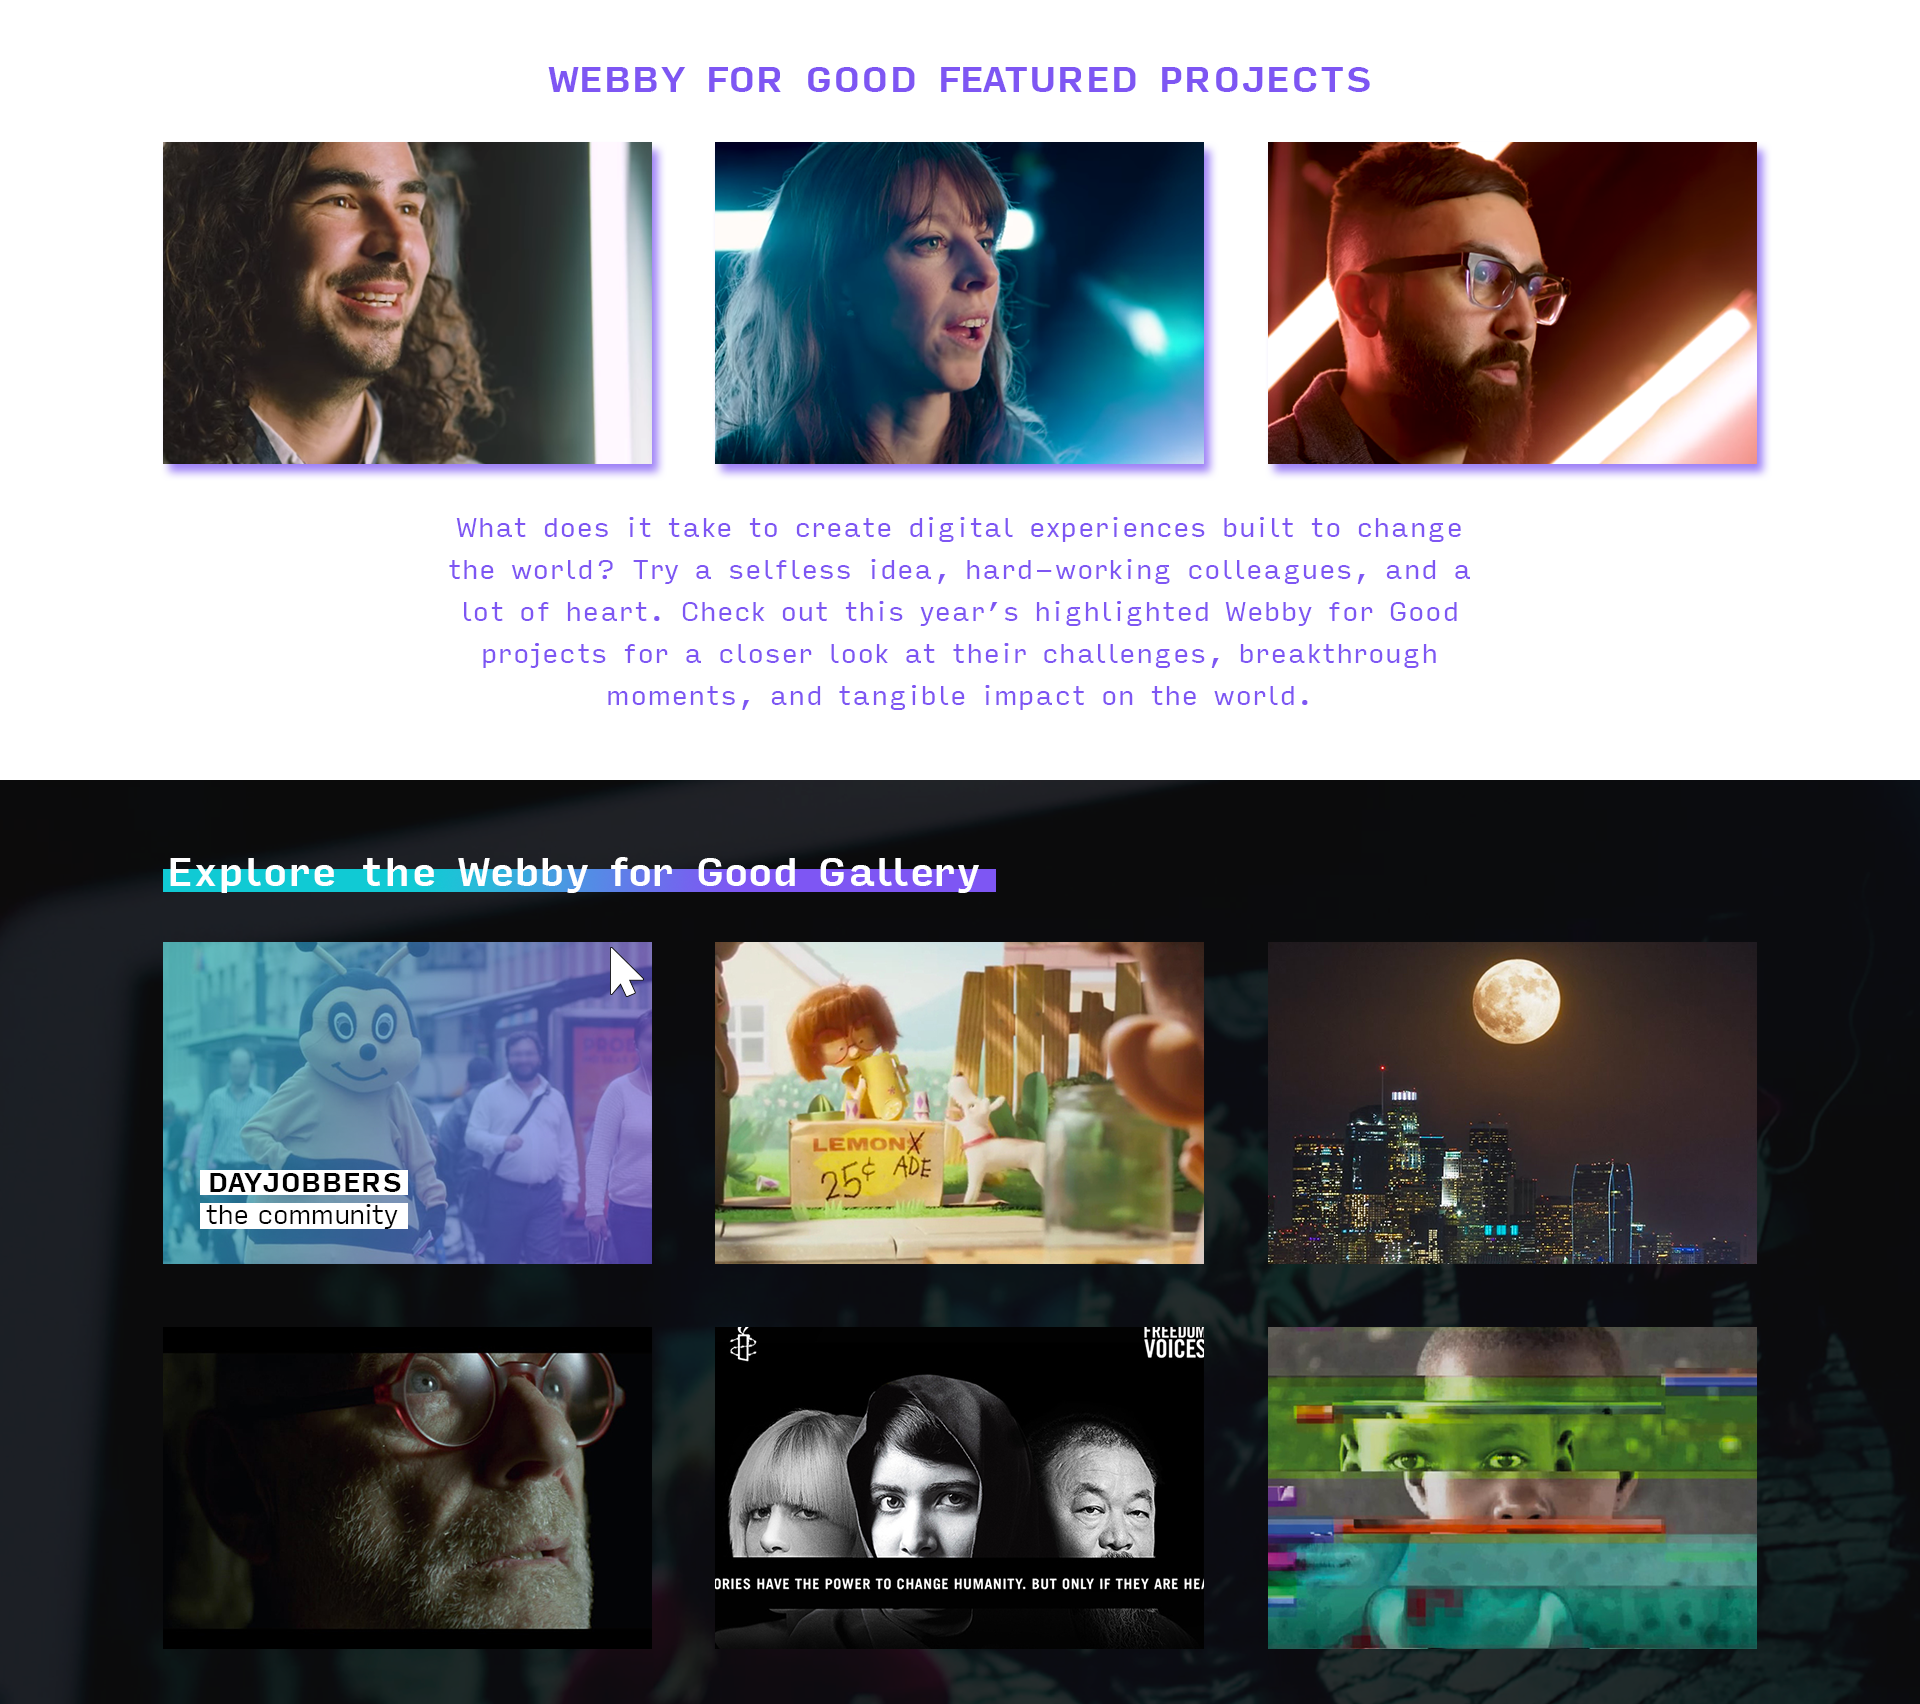 2019 Webby for Good website revamp - Features and gallery